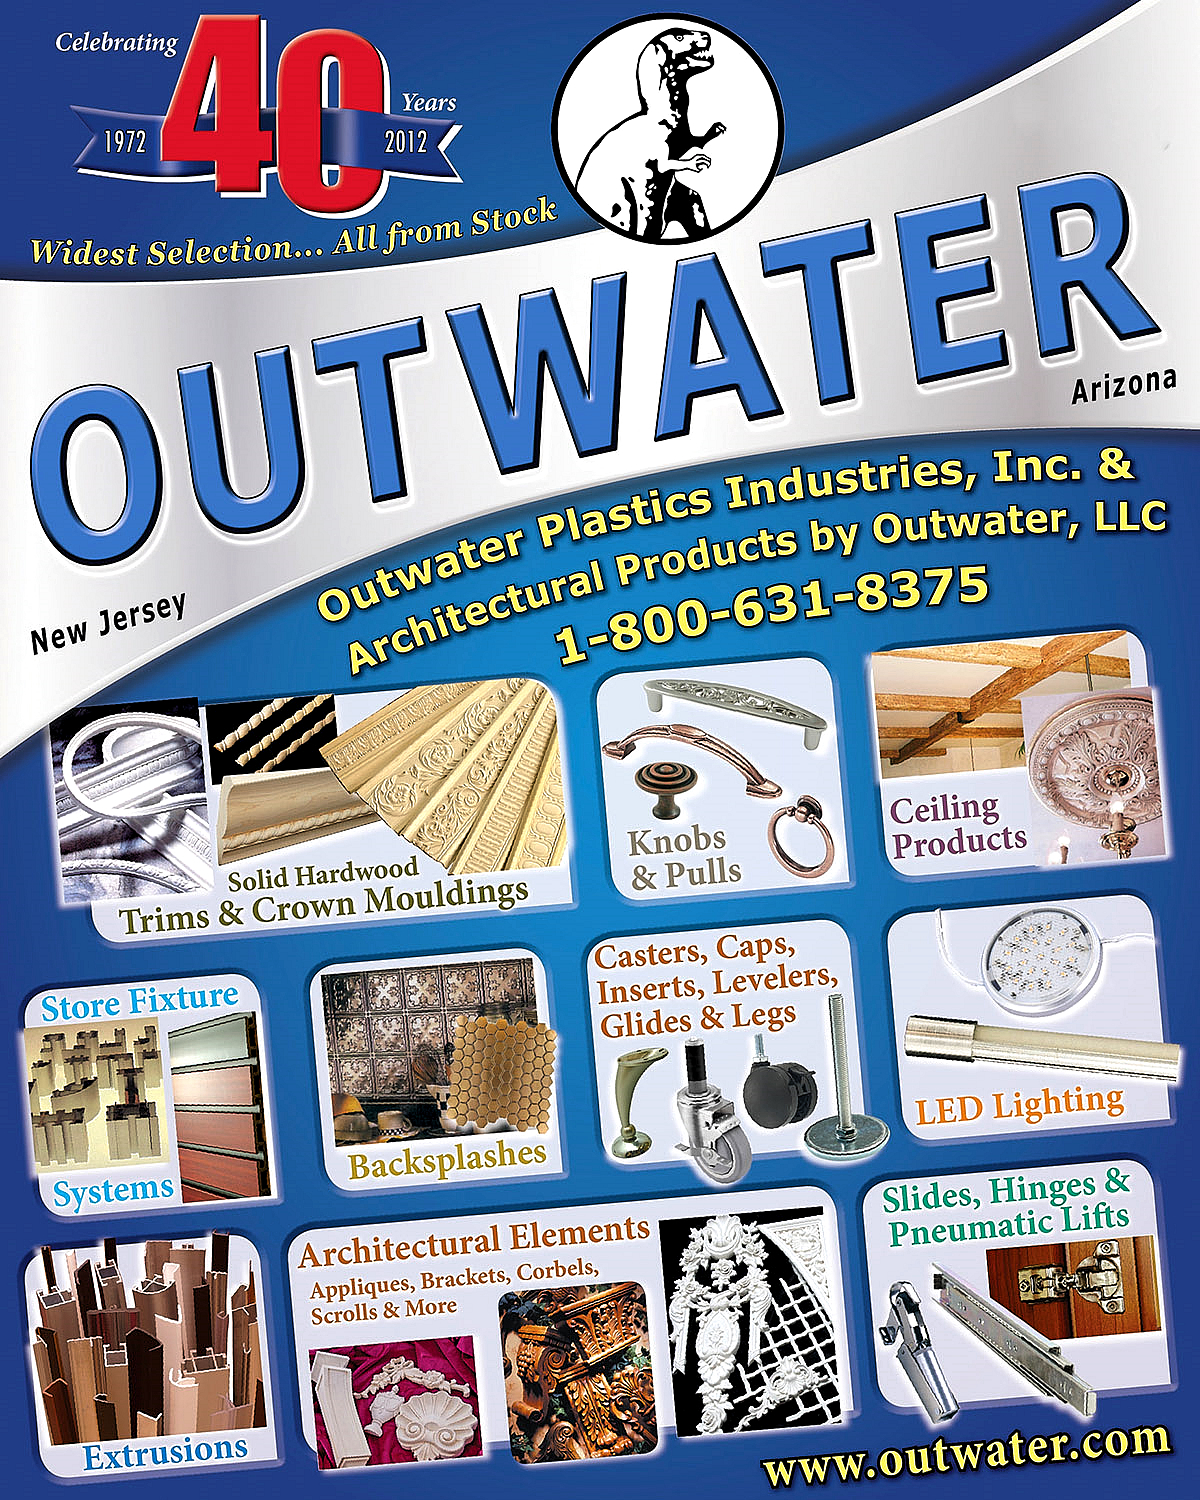 Outwater Plastics Appointed As A Full Line Distributor Of